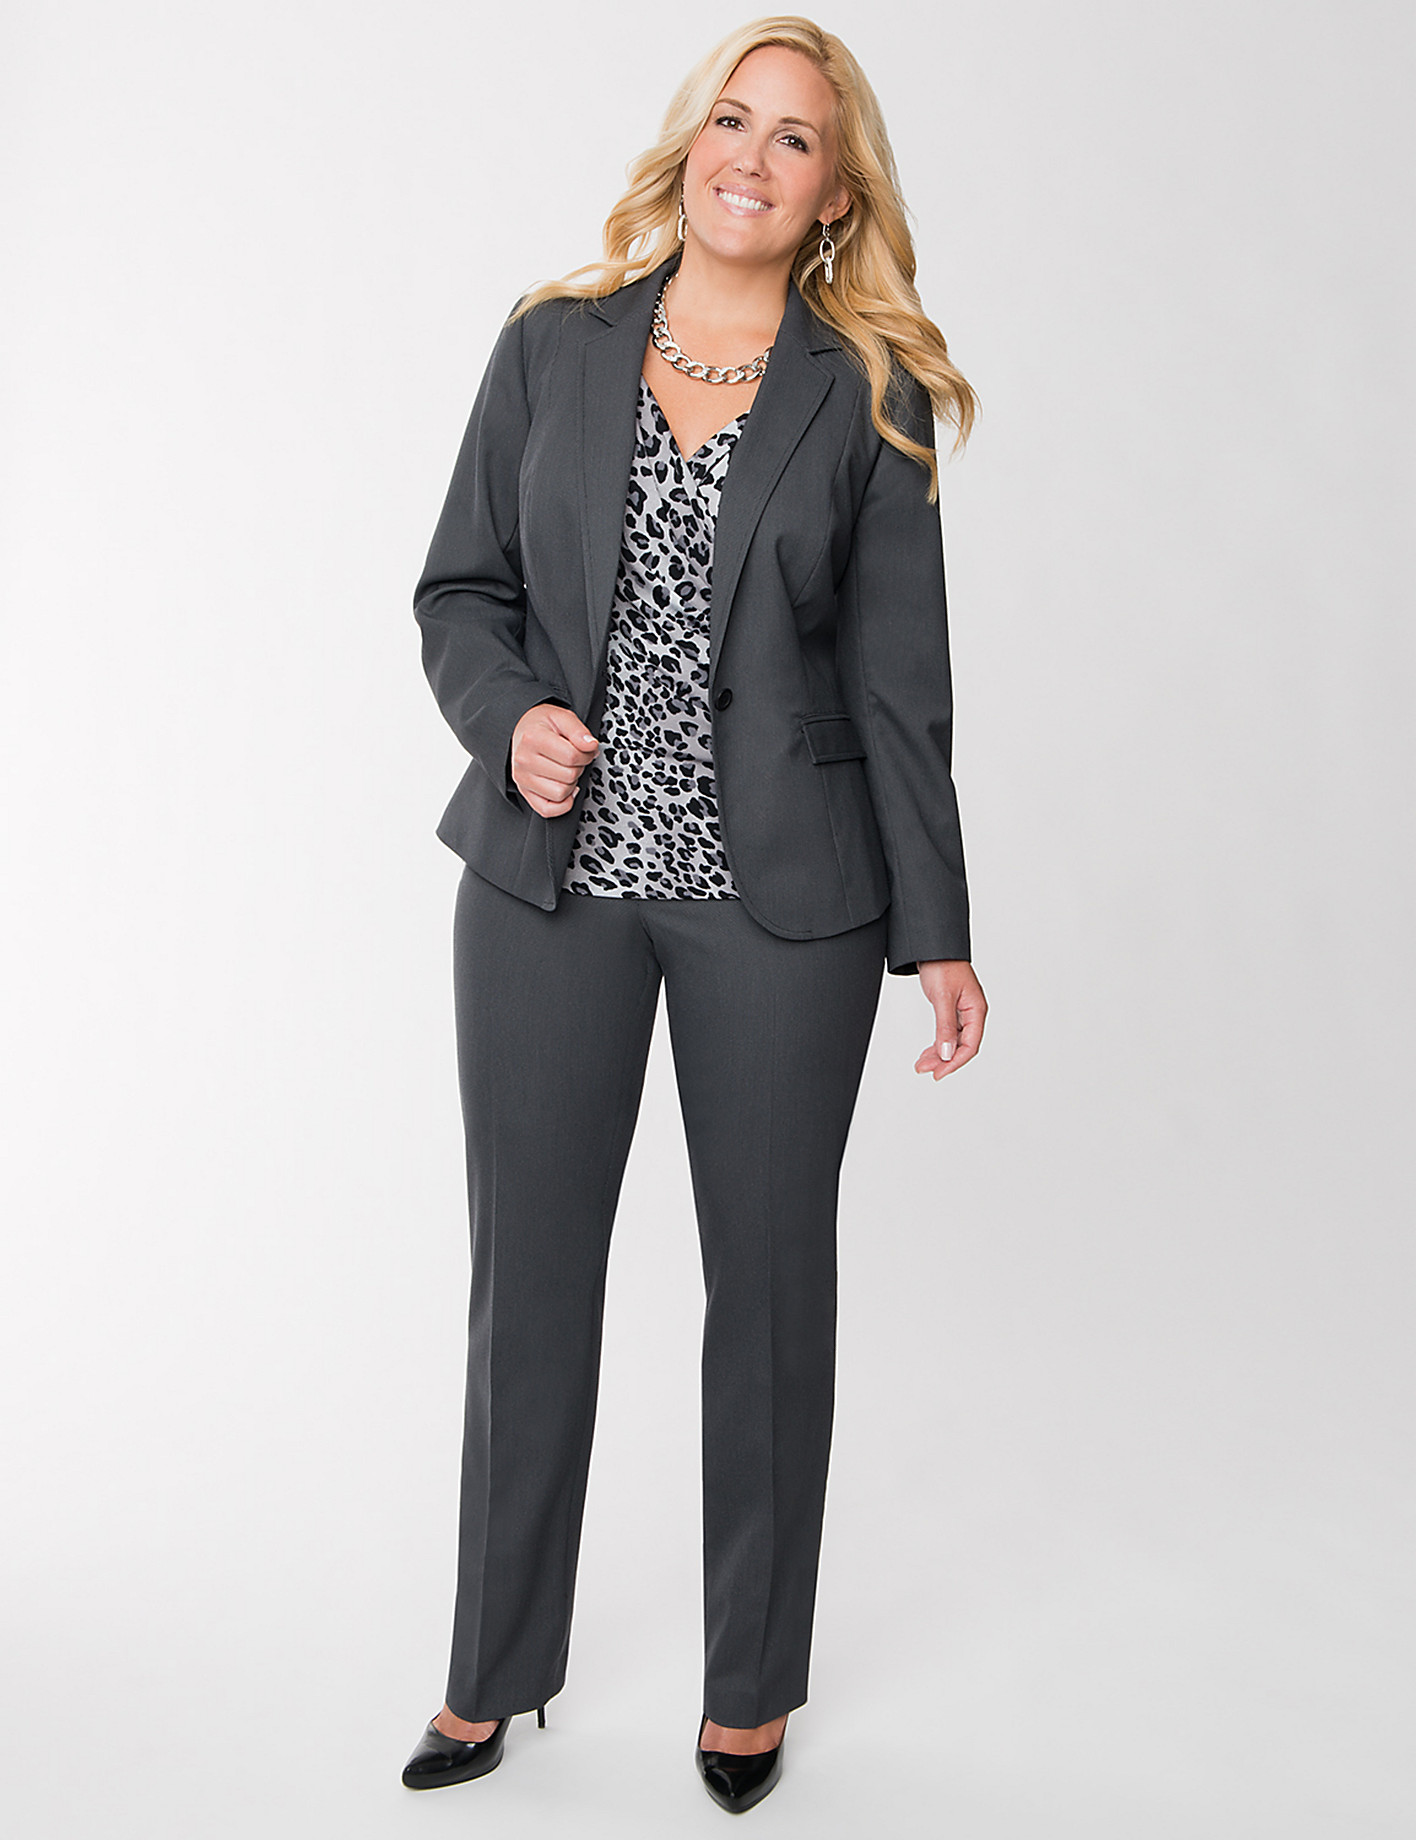 plus size pant suits for work photo - 1